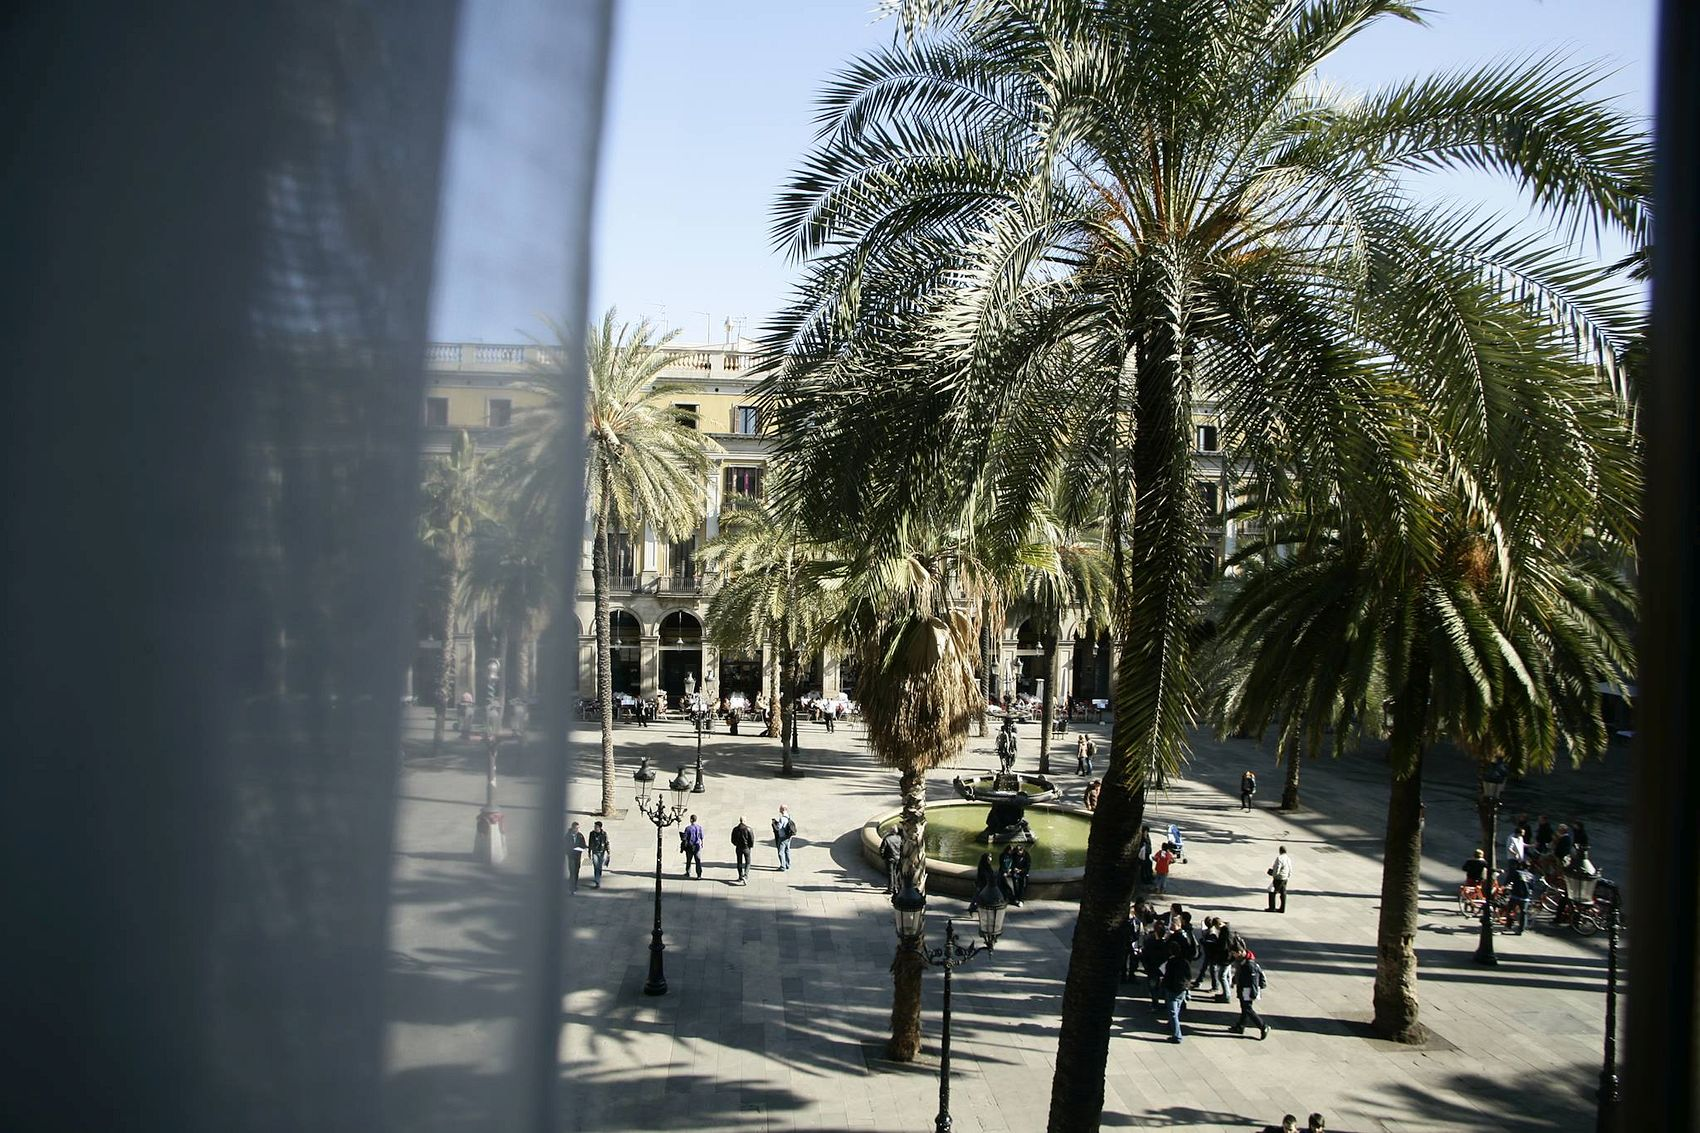 Lively Square in Barcelona